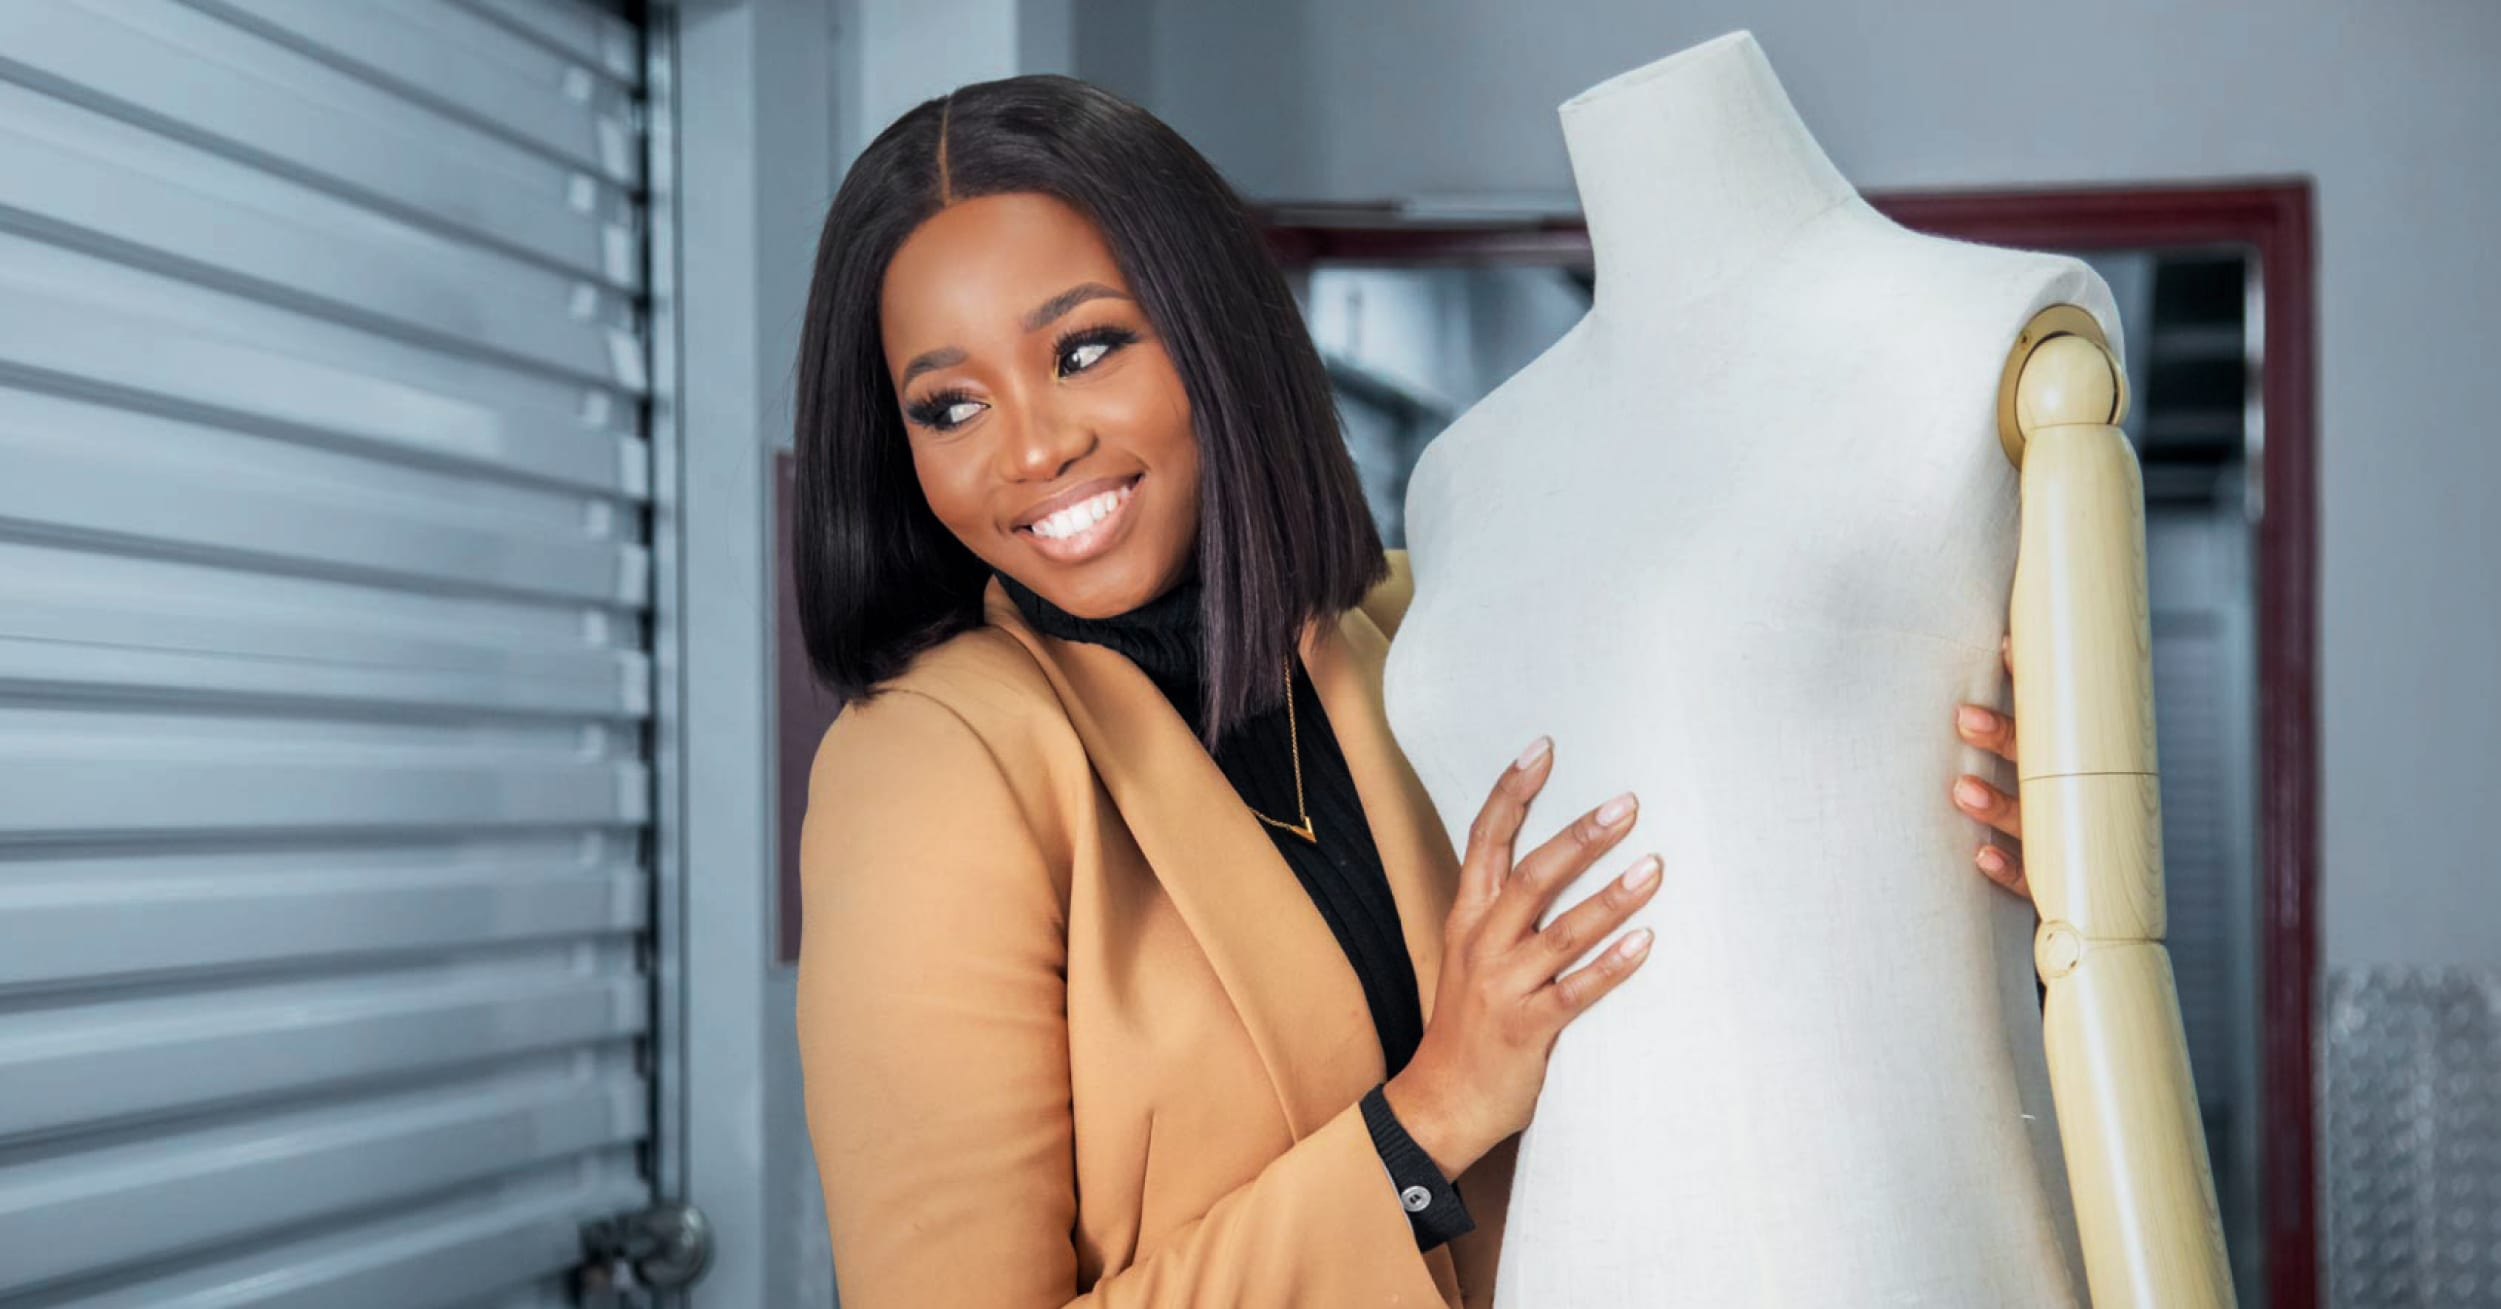 One of South Africa's leading beauty brands reveals its secret to success